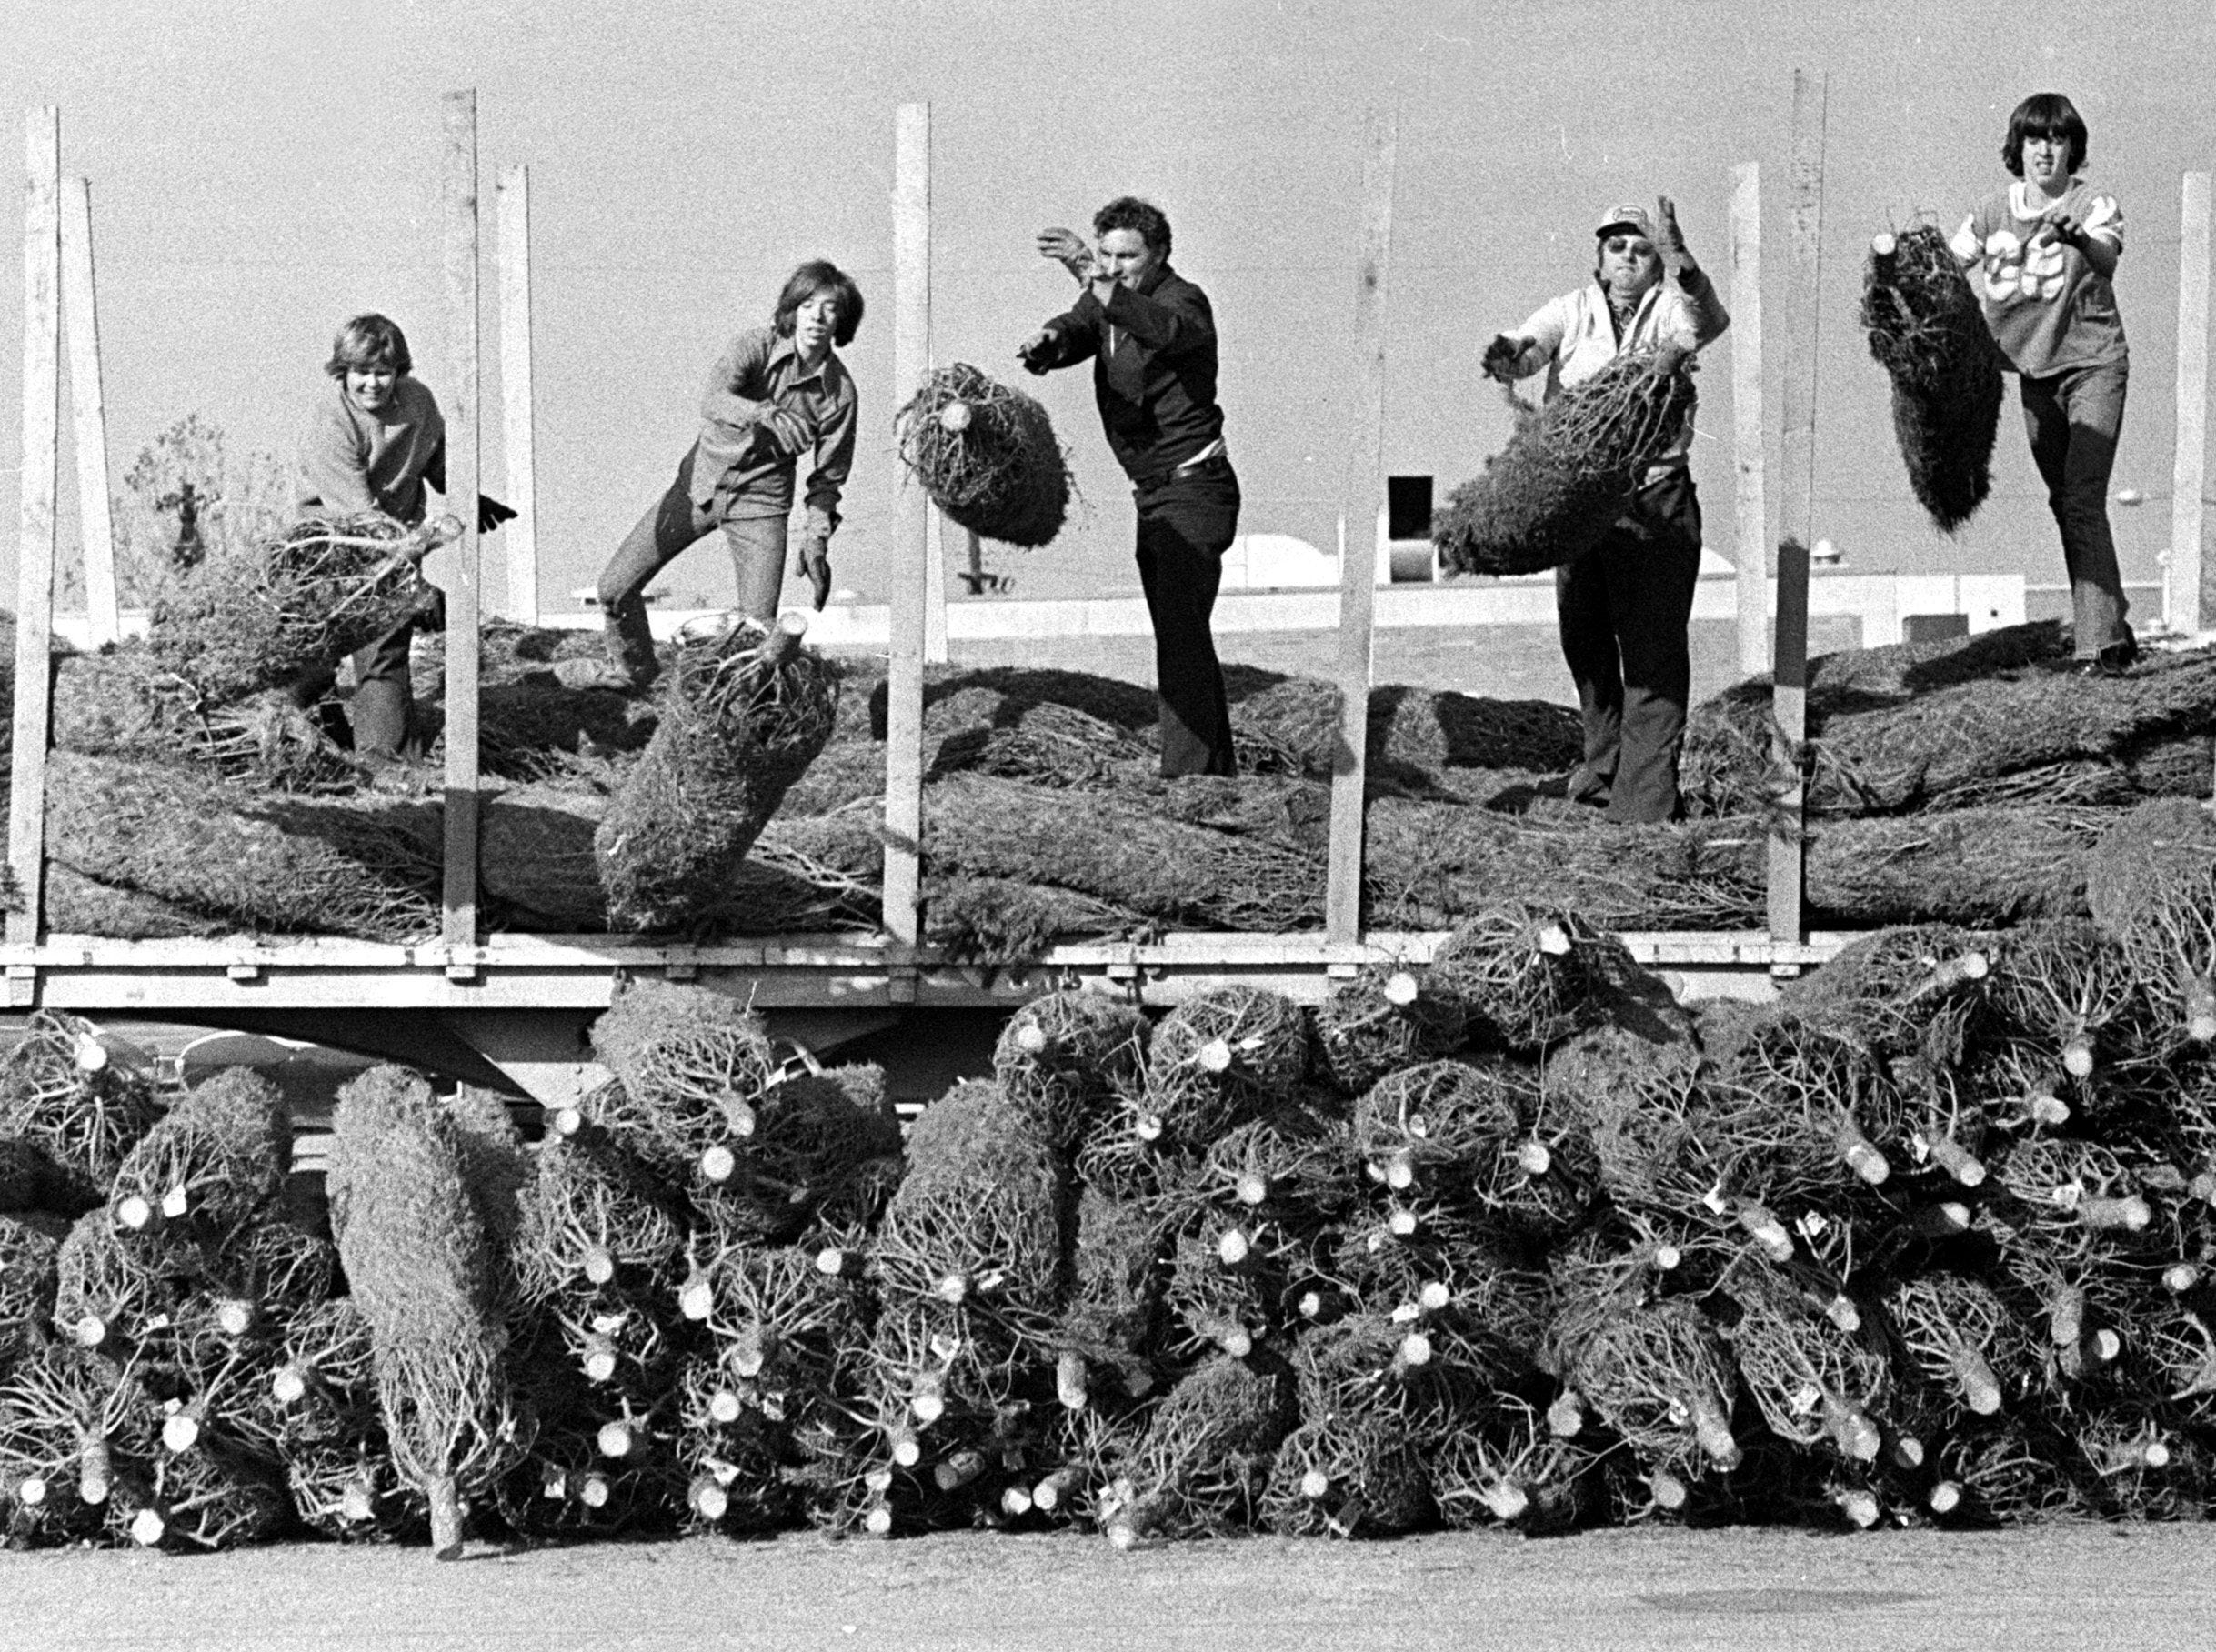 Whitehaven Optimists Club members, from left, Steve Poe, Bill Lamb, Virgil Inman, Art Smith and Steve Smith, unload Christmas trees on Nov. 29, 1974. The club will sell the trees in Whitehaven Plaza.  Jim Shearin / The Commercial Appeal Whitehaven Optimists Club members (From Left) Steve Poe, Bill Lamb, Virgil Inman, Art Smith and Steve Smith unload Christmas trees on 29 Nov 1974. The club will sell the trees in Whitehaven Plaza.